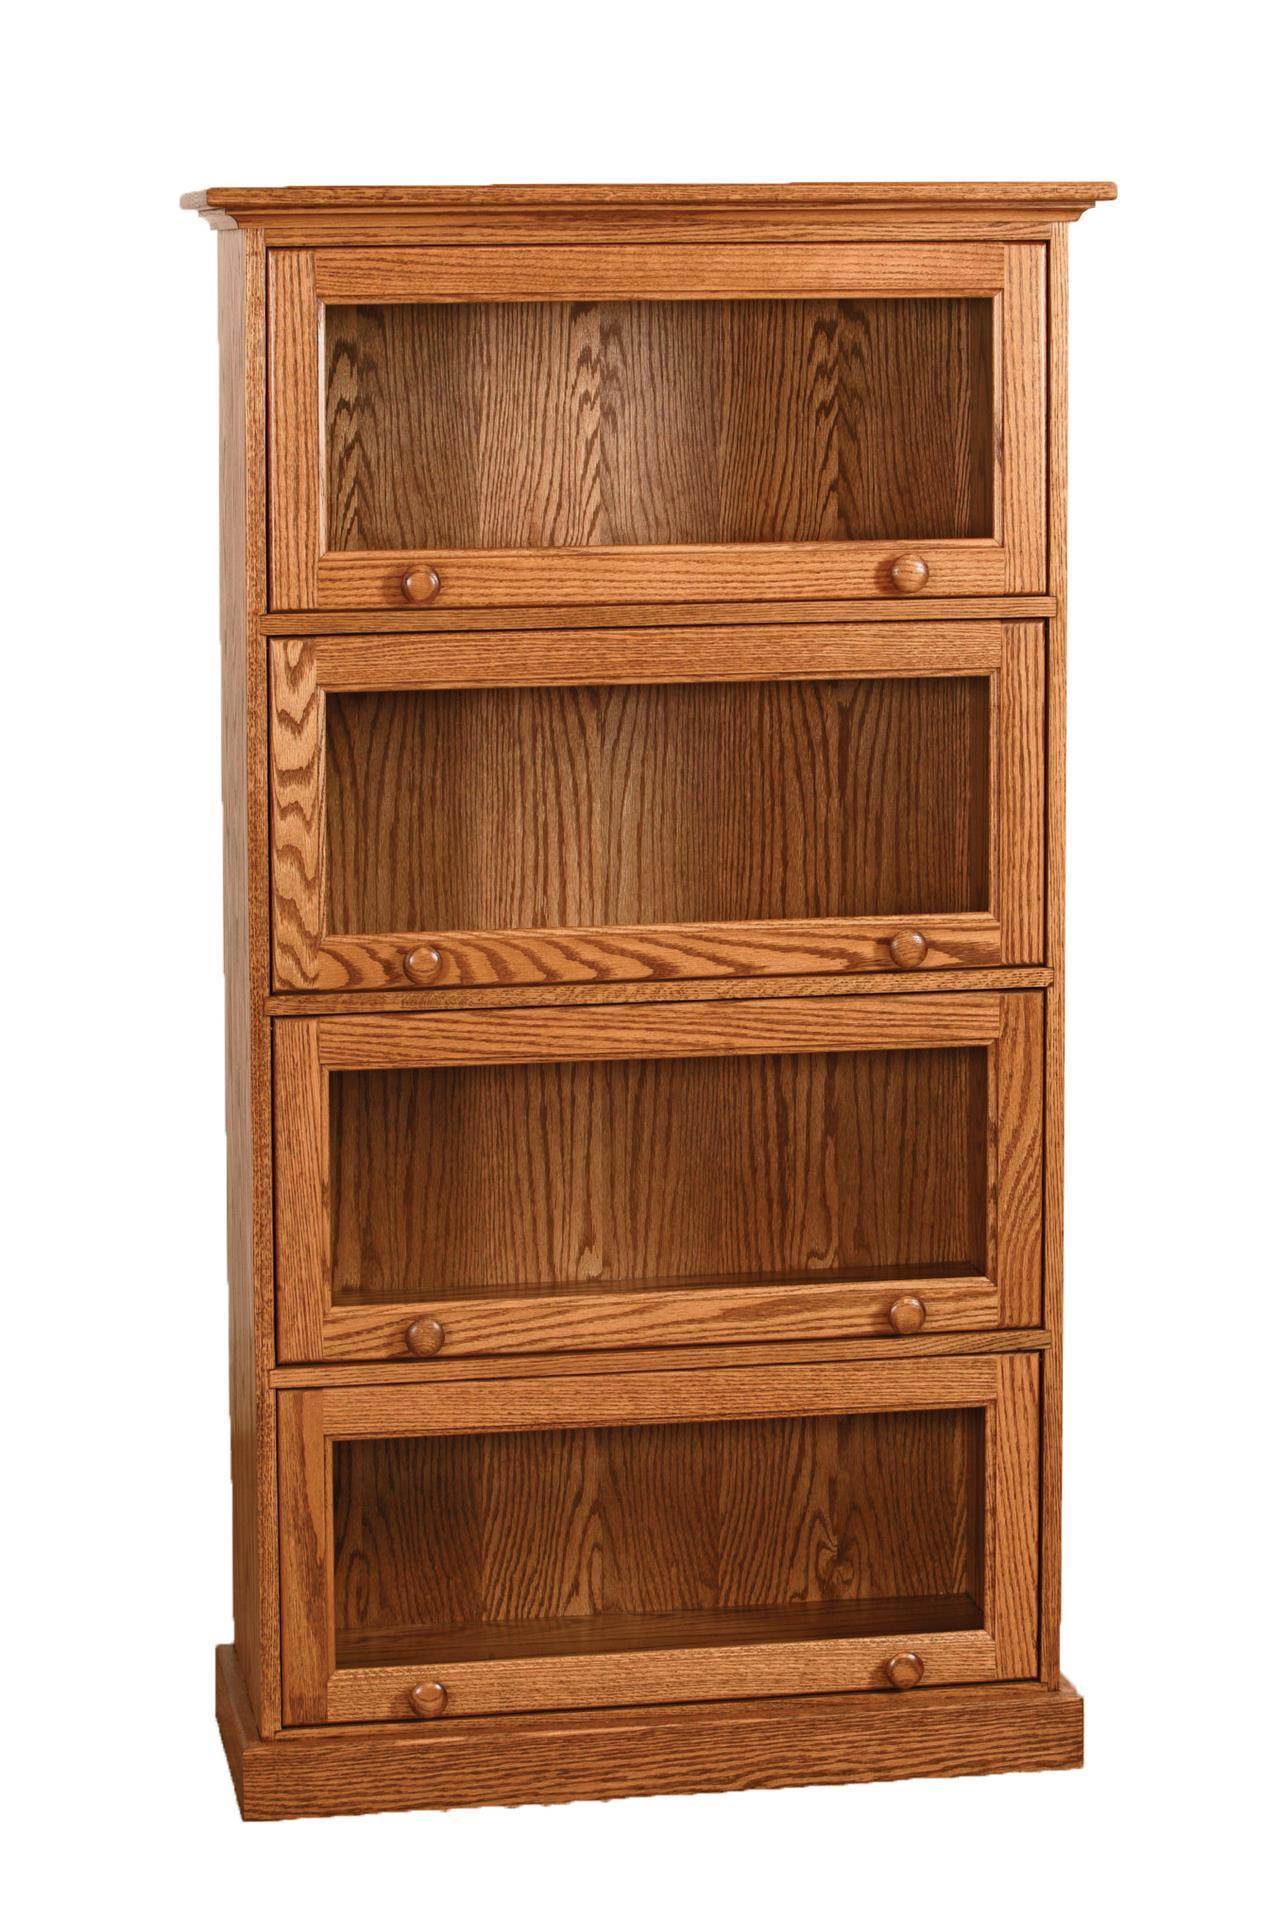 Vintage Barrister Bookcase From Dutchcrafters Amish Furniture